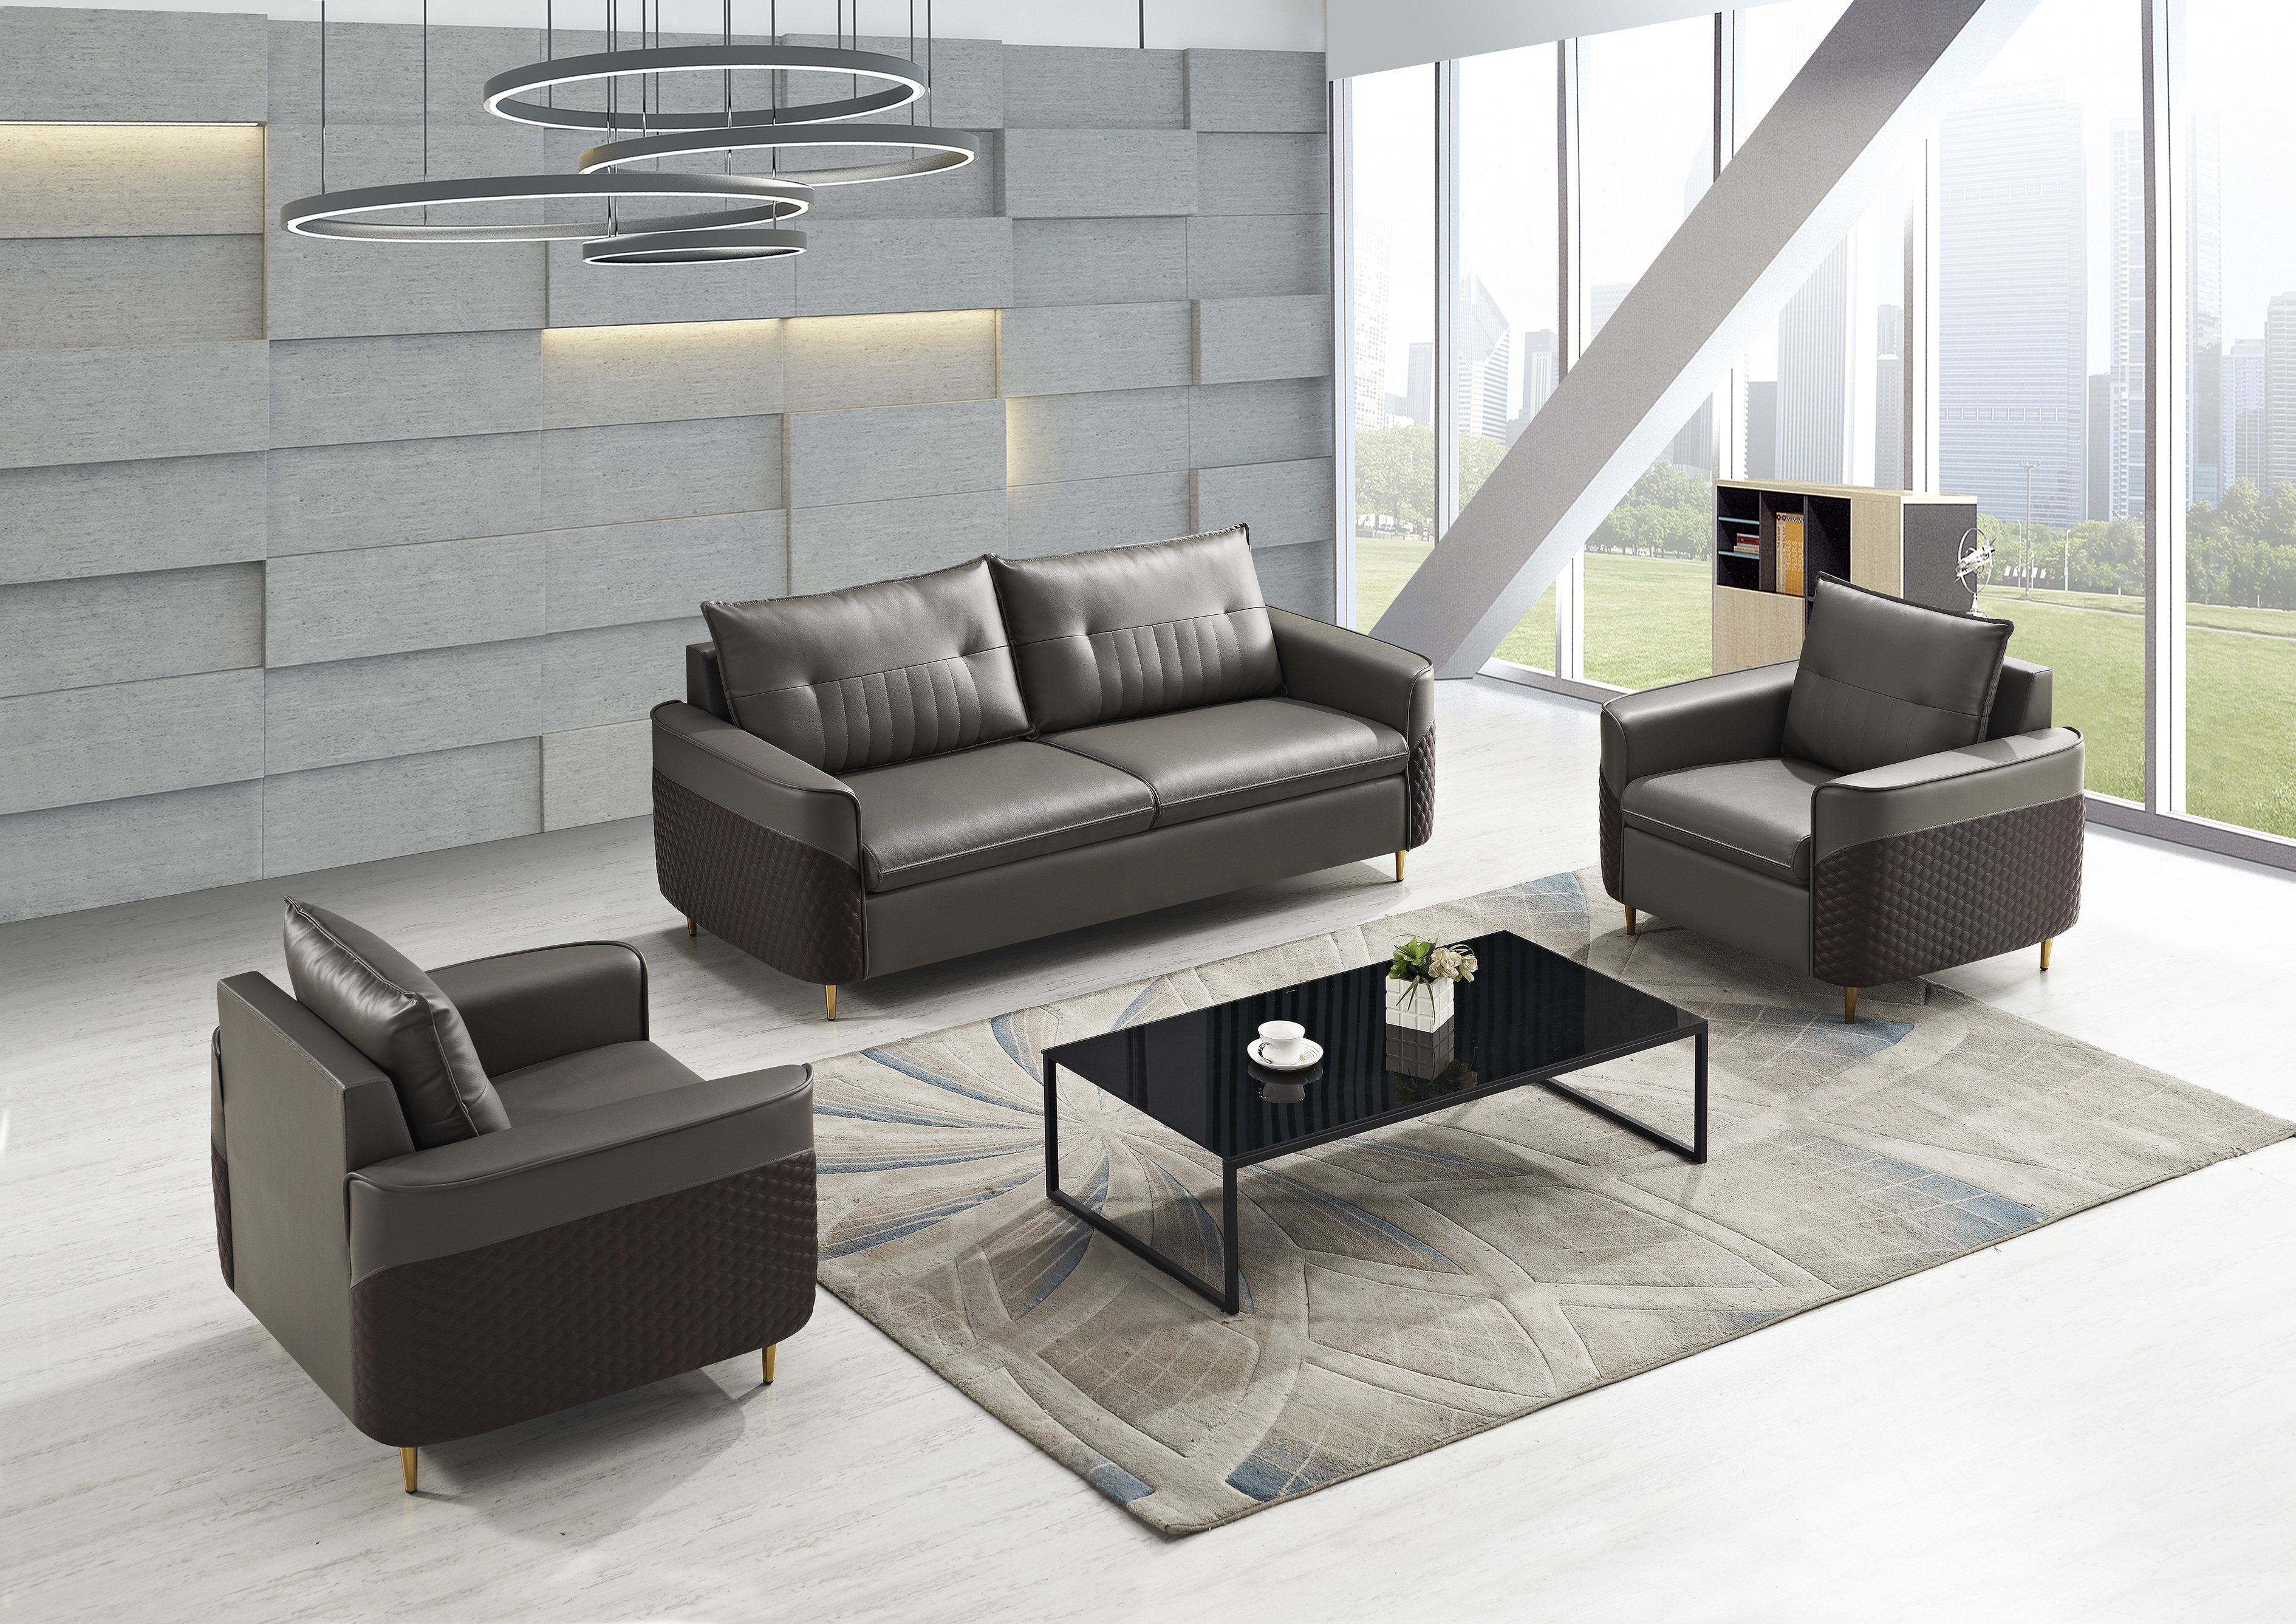 2019 New model leather sofa sets pictures/office sectional sofa furnitureW8688